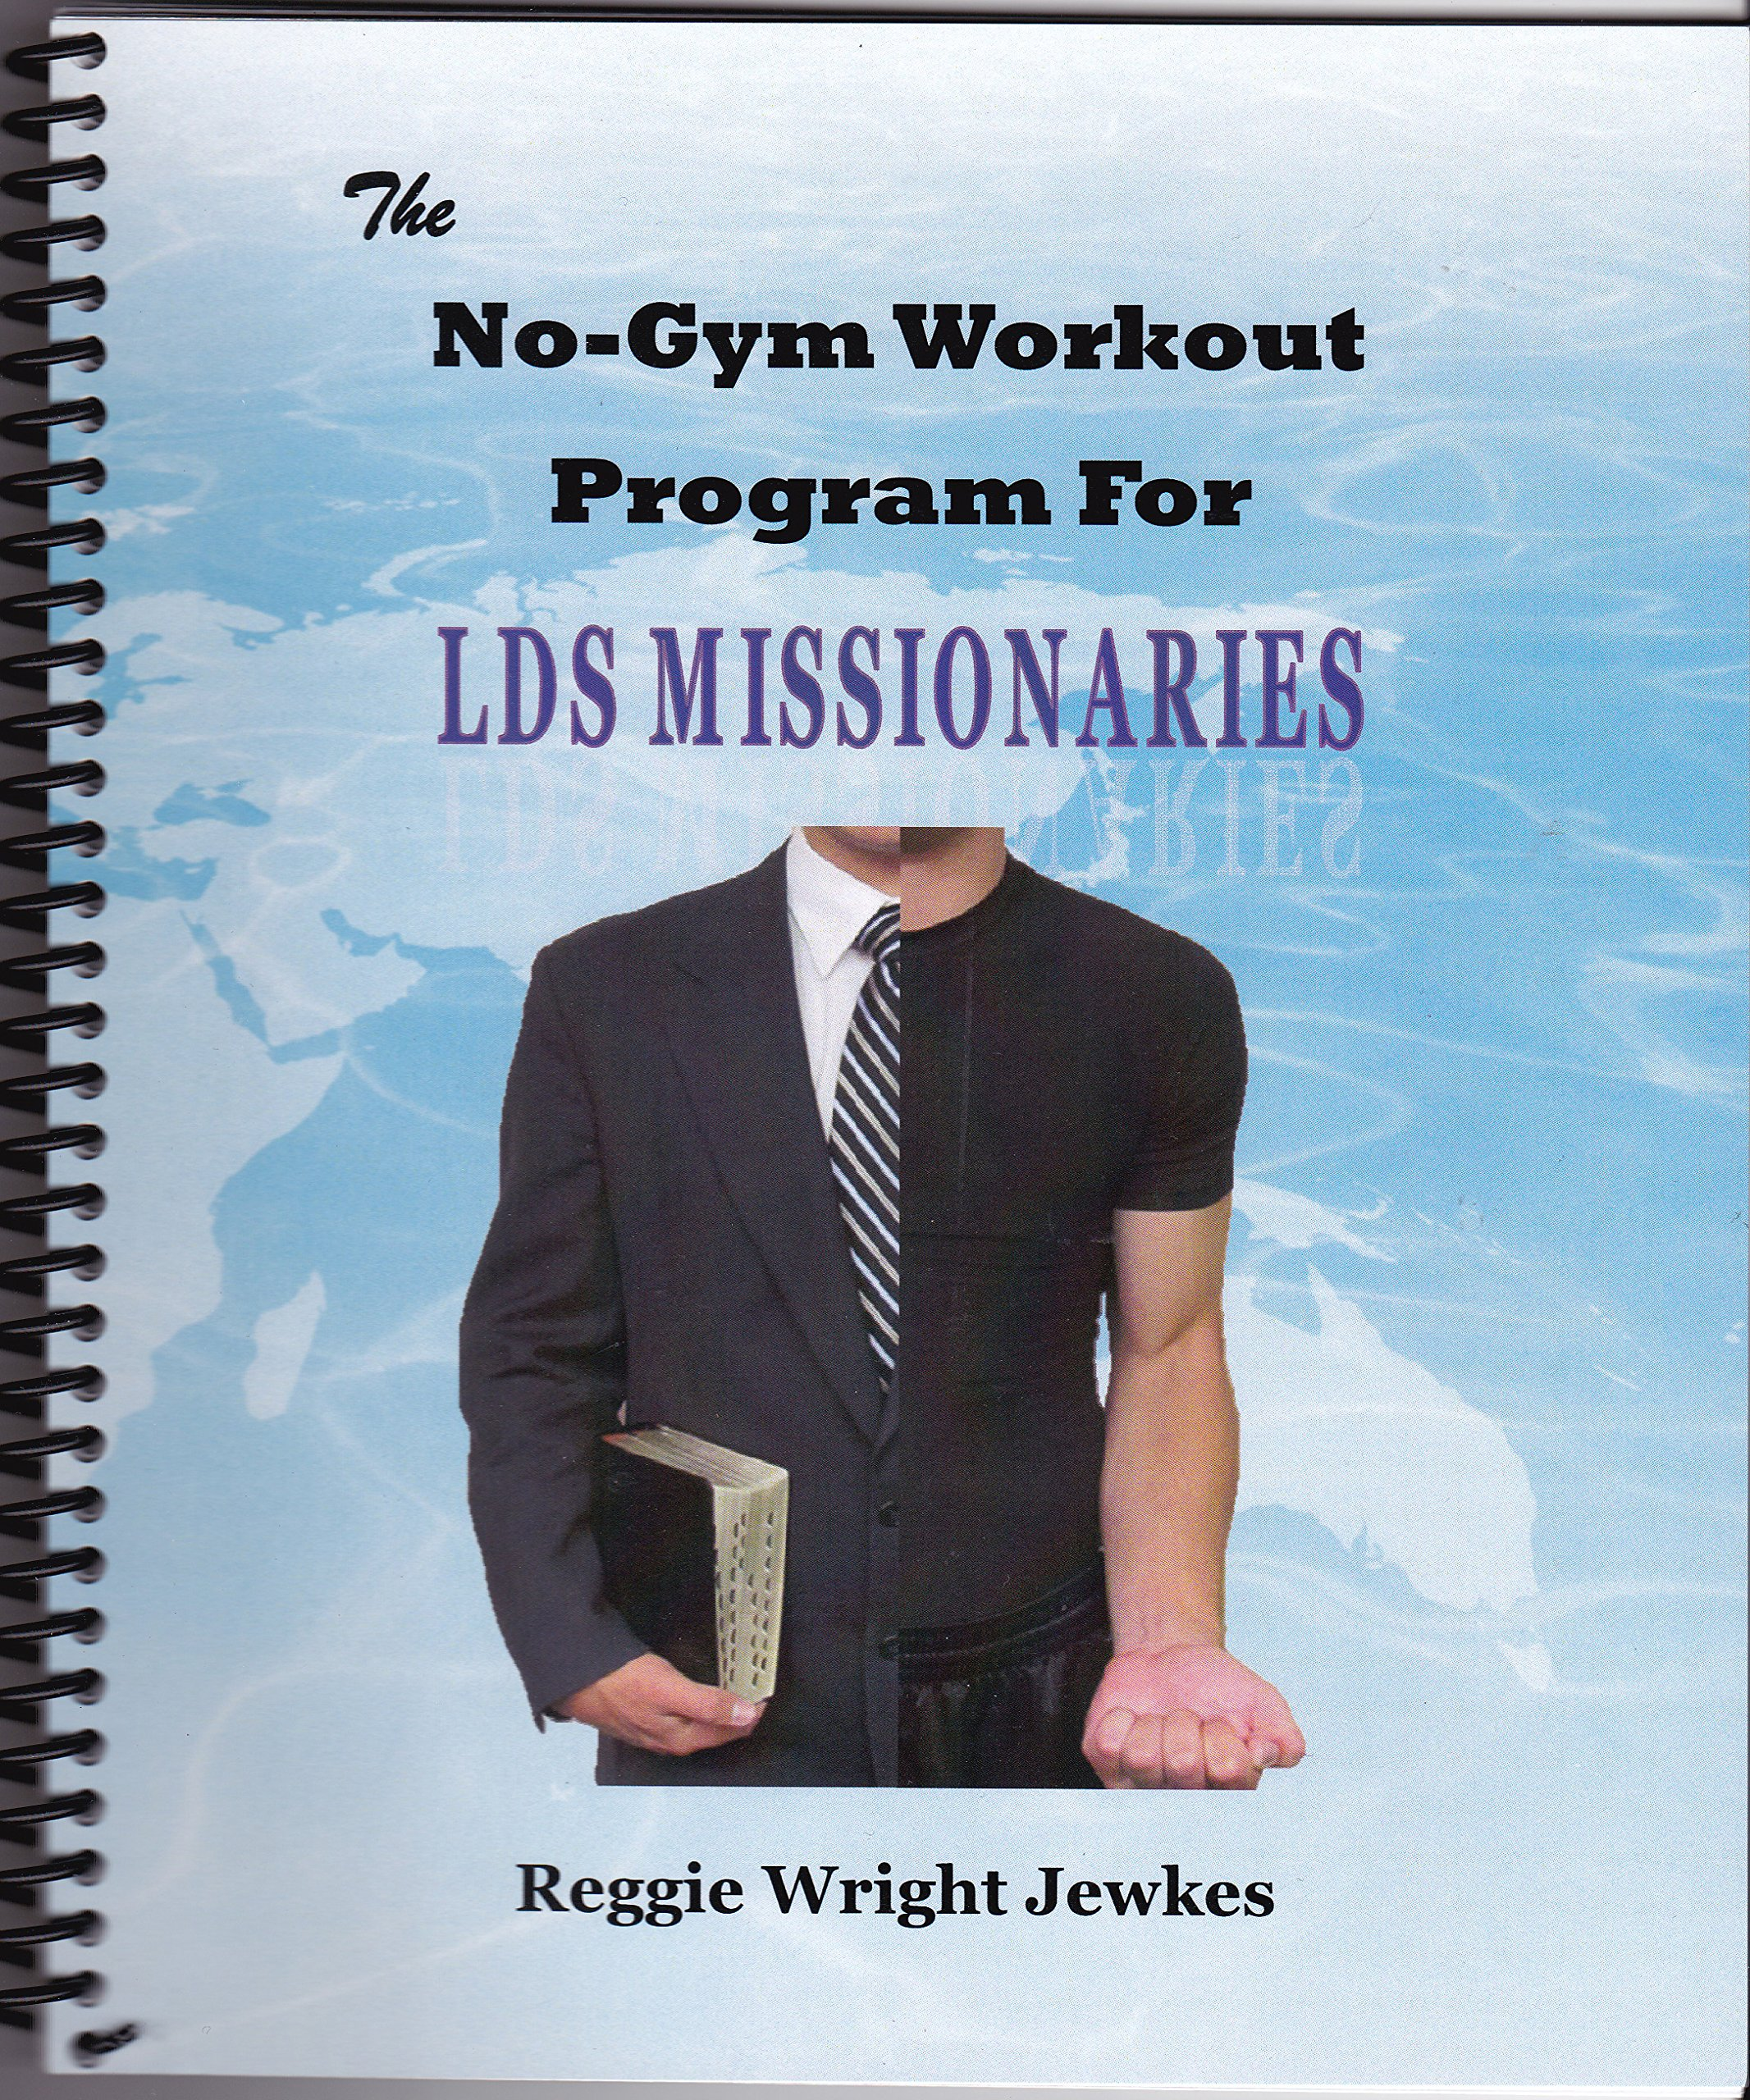 The No-Gym Workout Program for LDS Missionaries: Reggie Wright